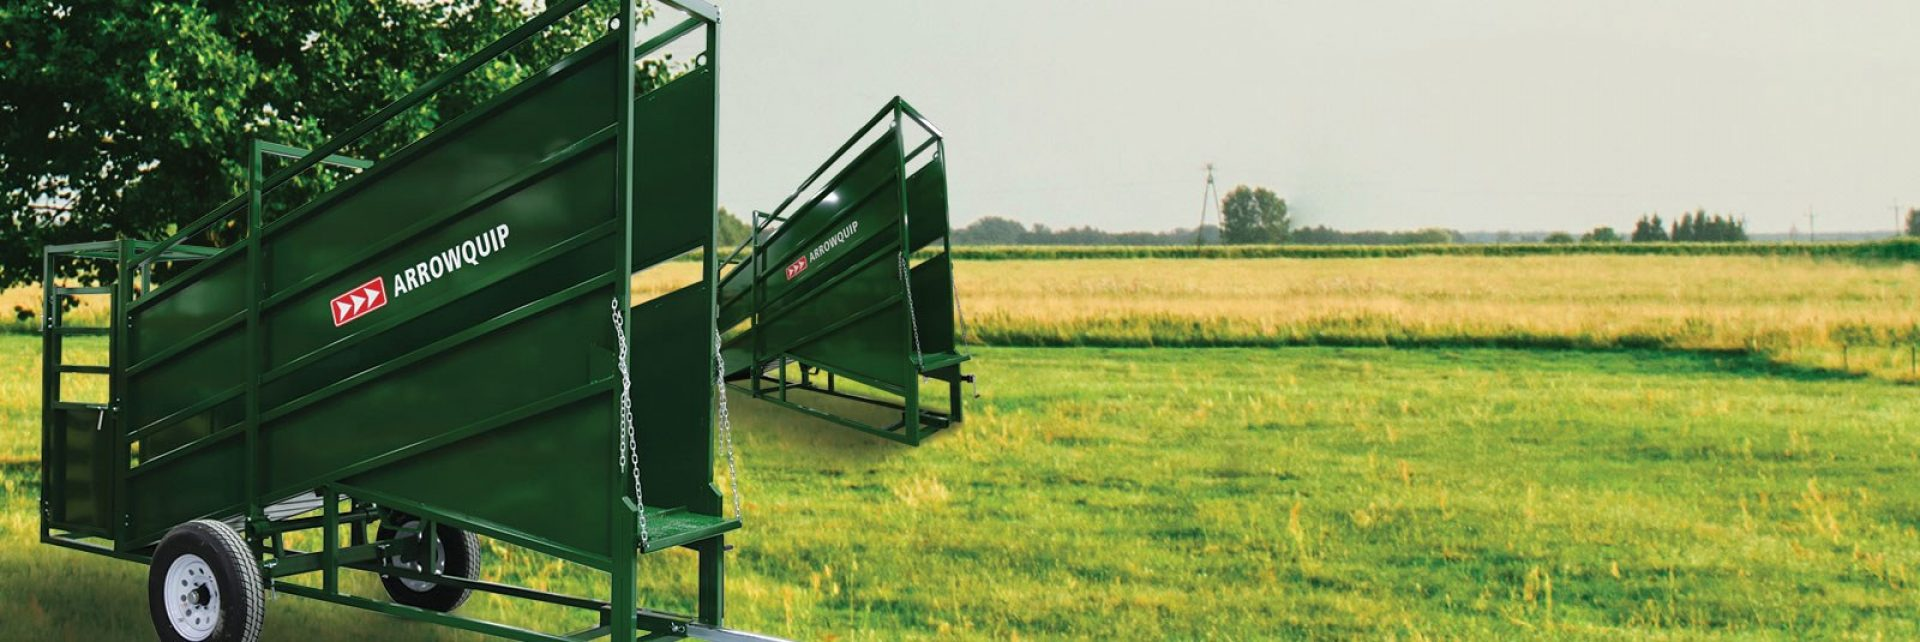 Cattle Loading Chutes in field | Arrowquip Cattle Equipment